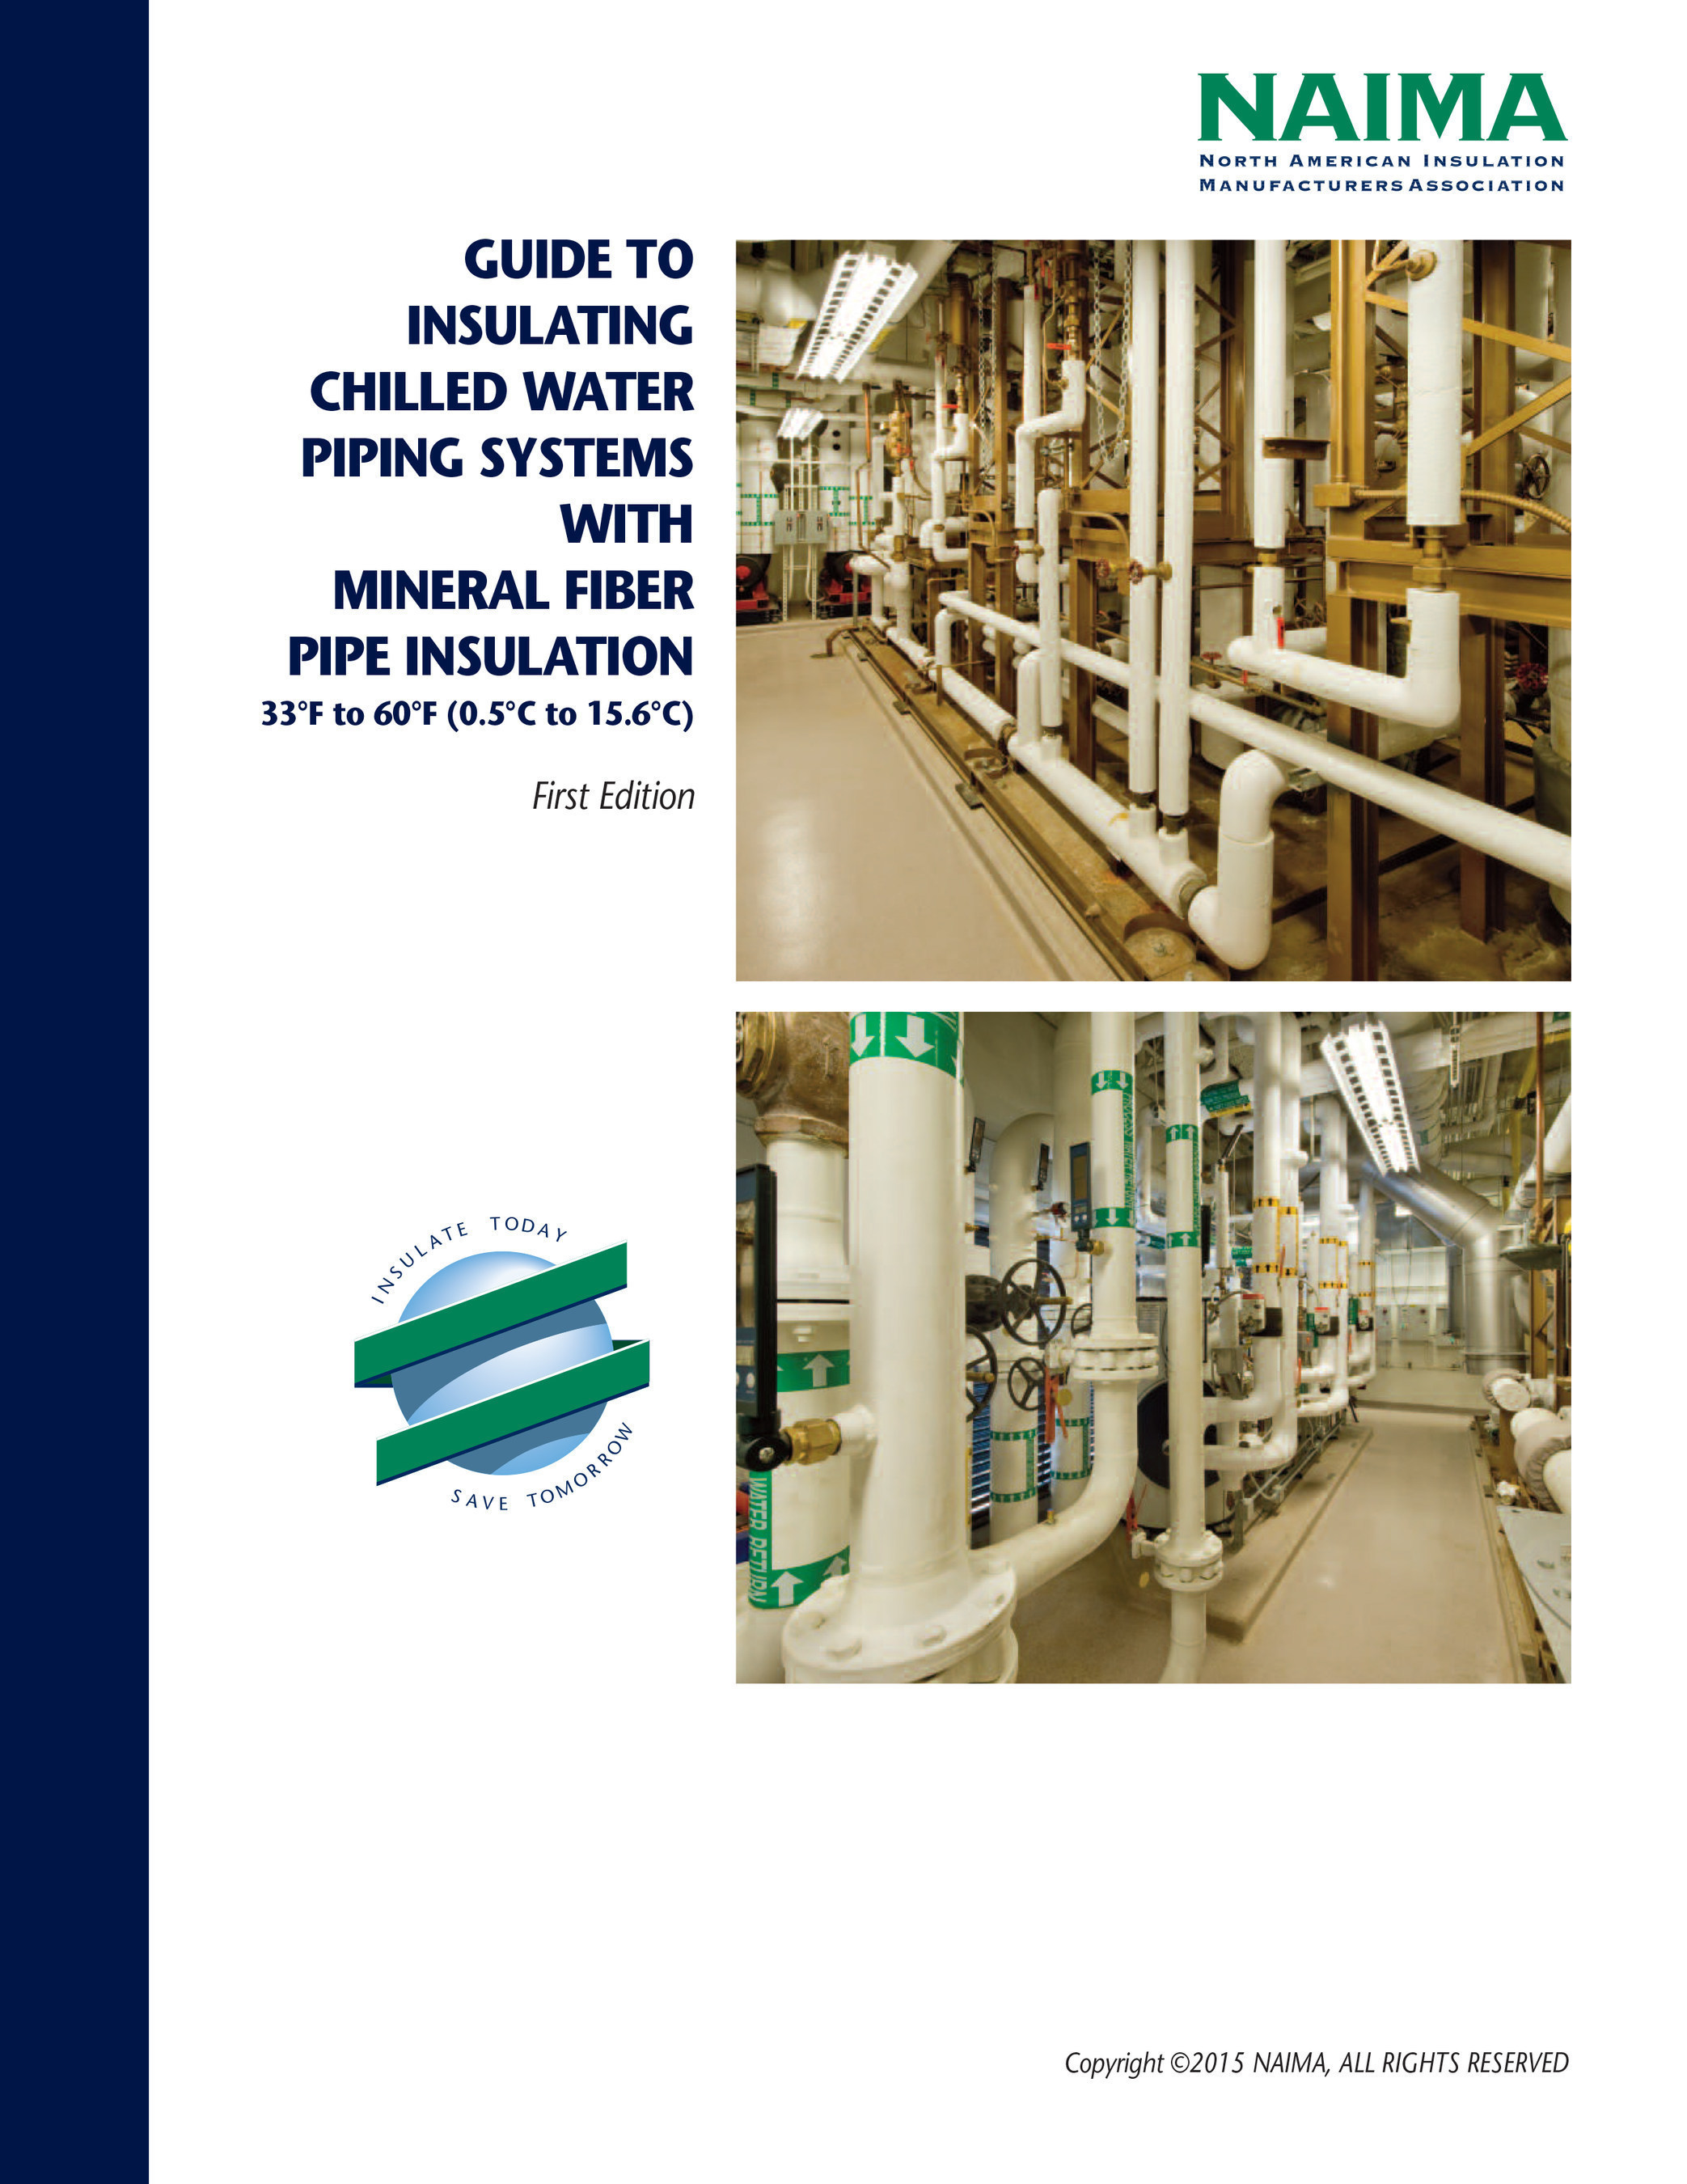 32-page guide was developed for professional insulation contractors